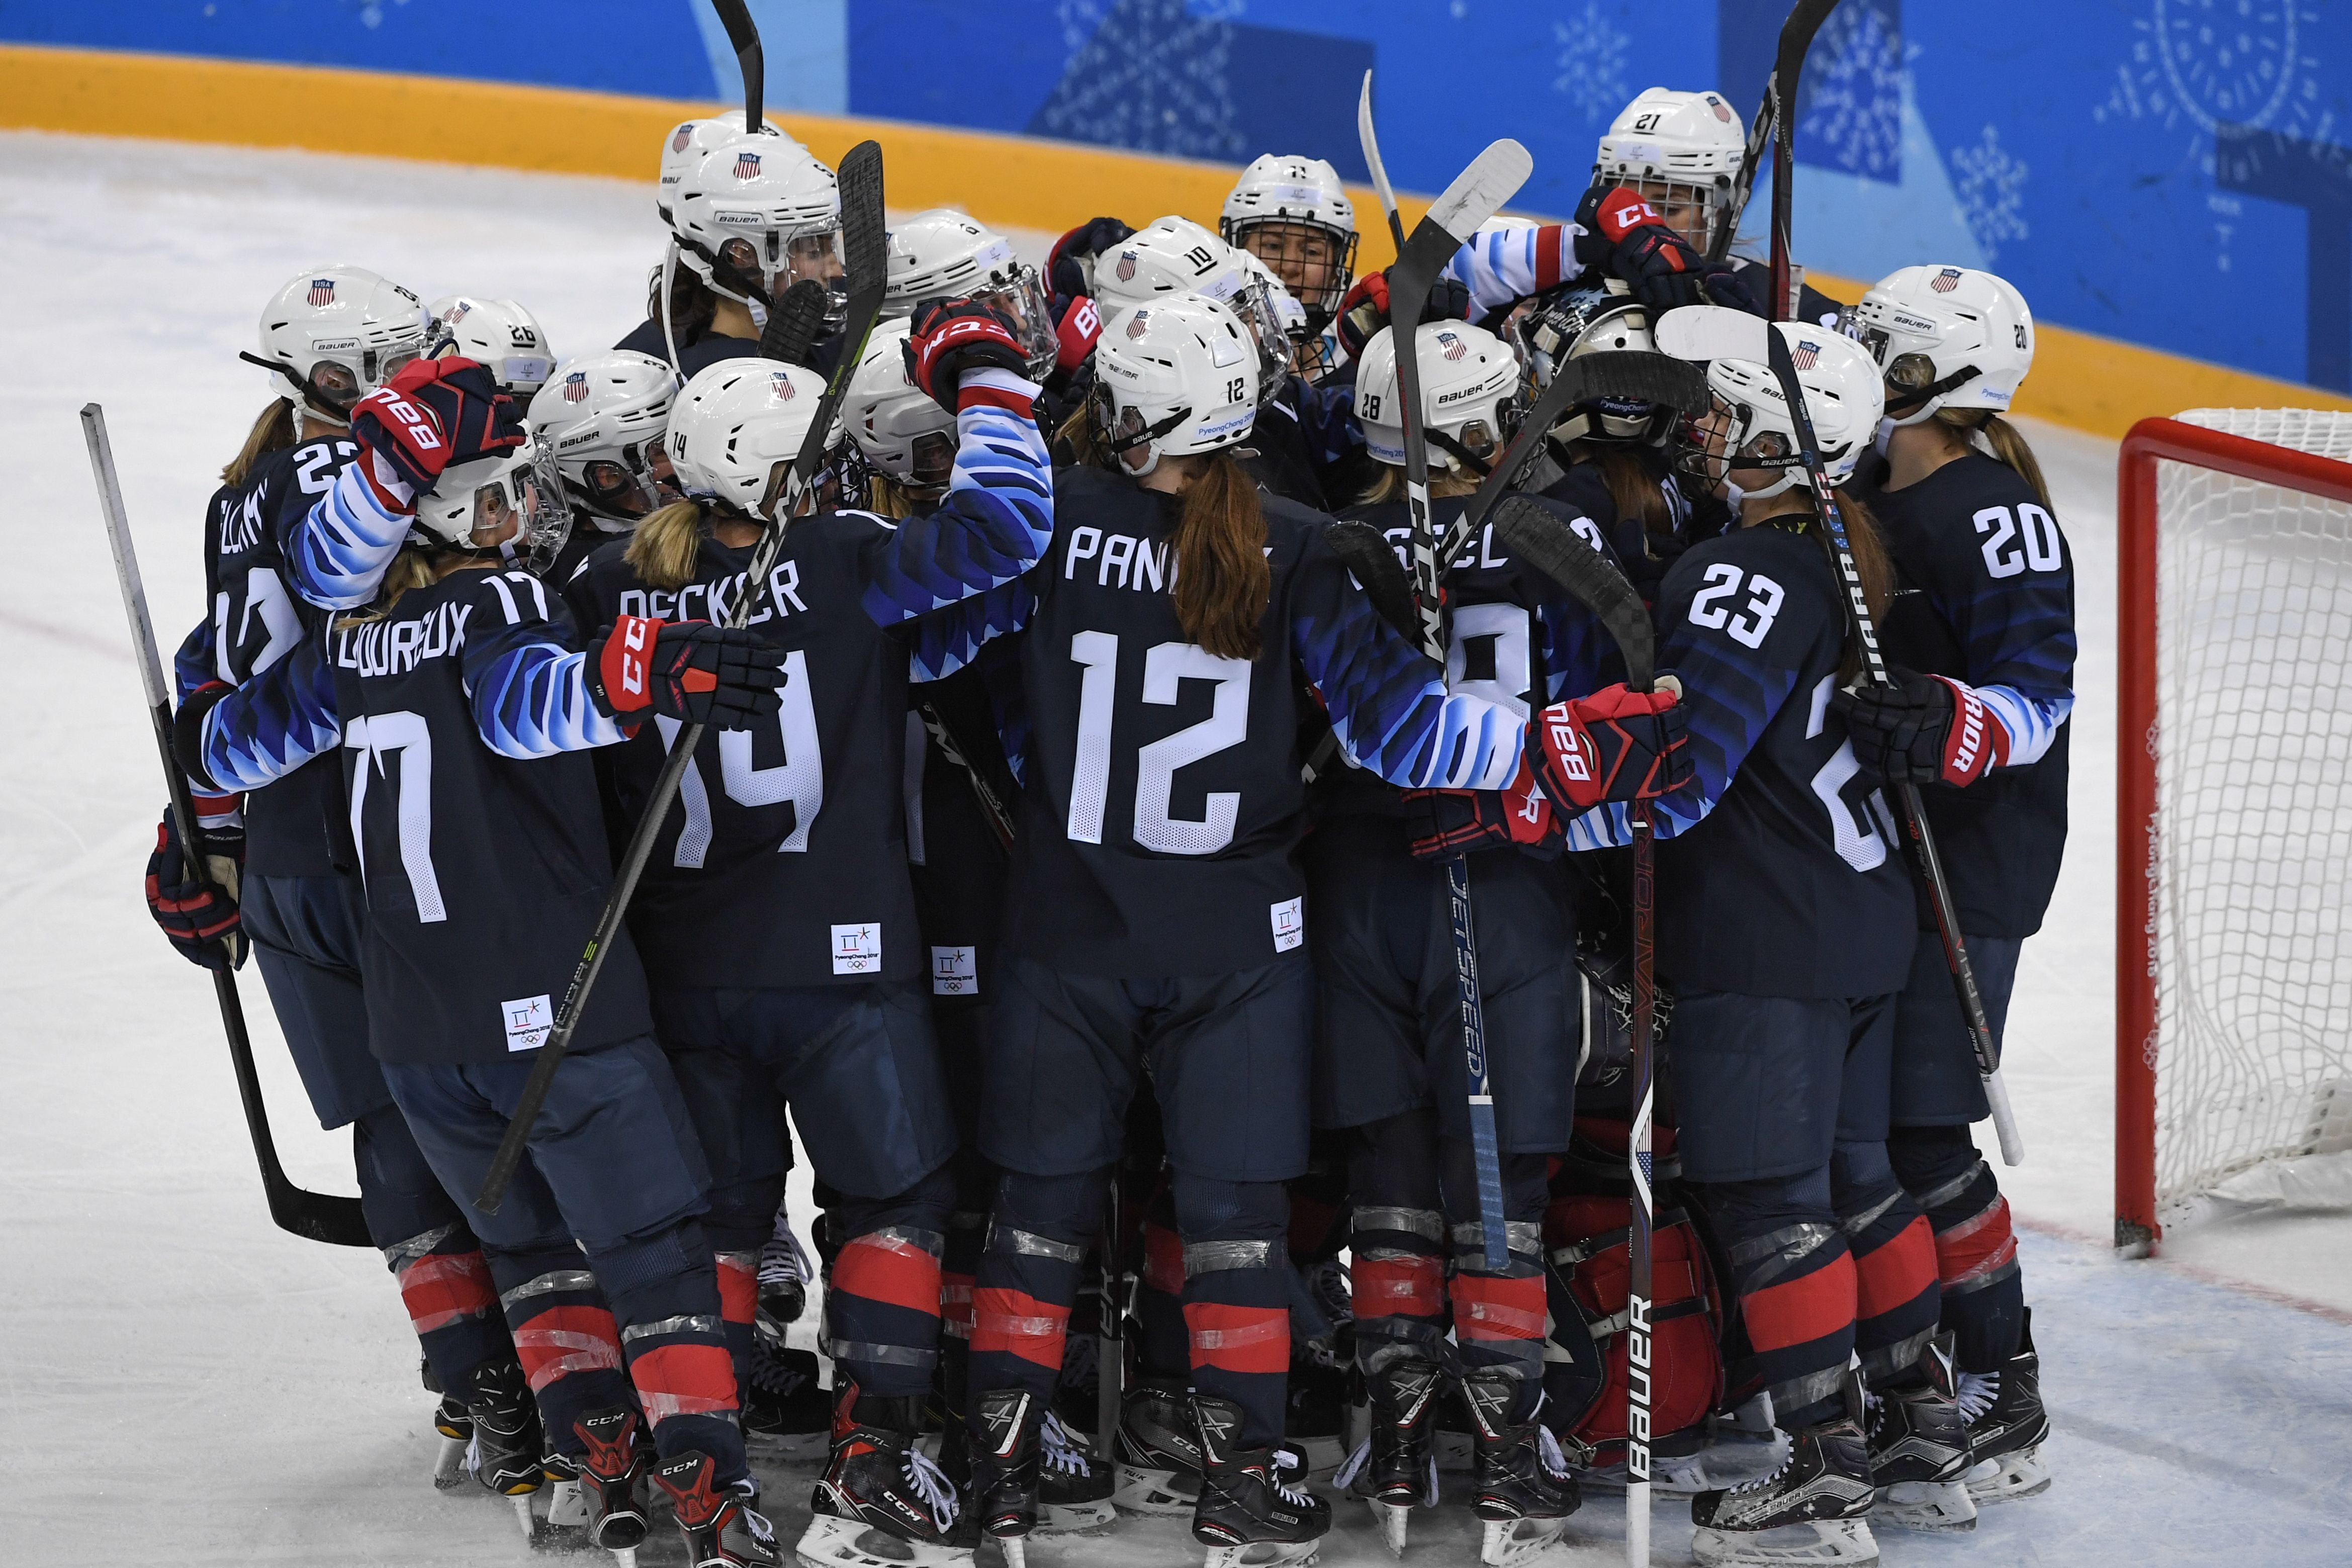 U.S. players celebrate after the women's ice hockey semifinal game between the United States and Finland during the Pyeongchang 2018 Winter Olympic Games at the Gangneung Hockey Centre in Gangneung on Feb. 19, 2018.